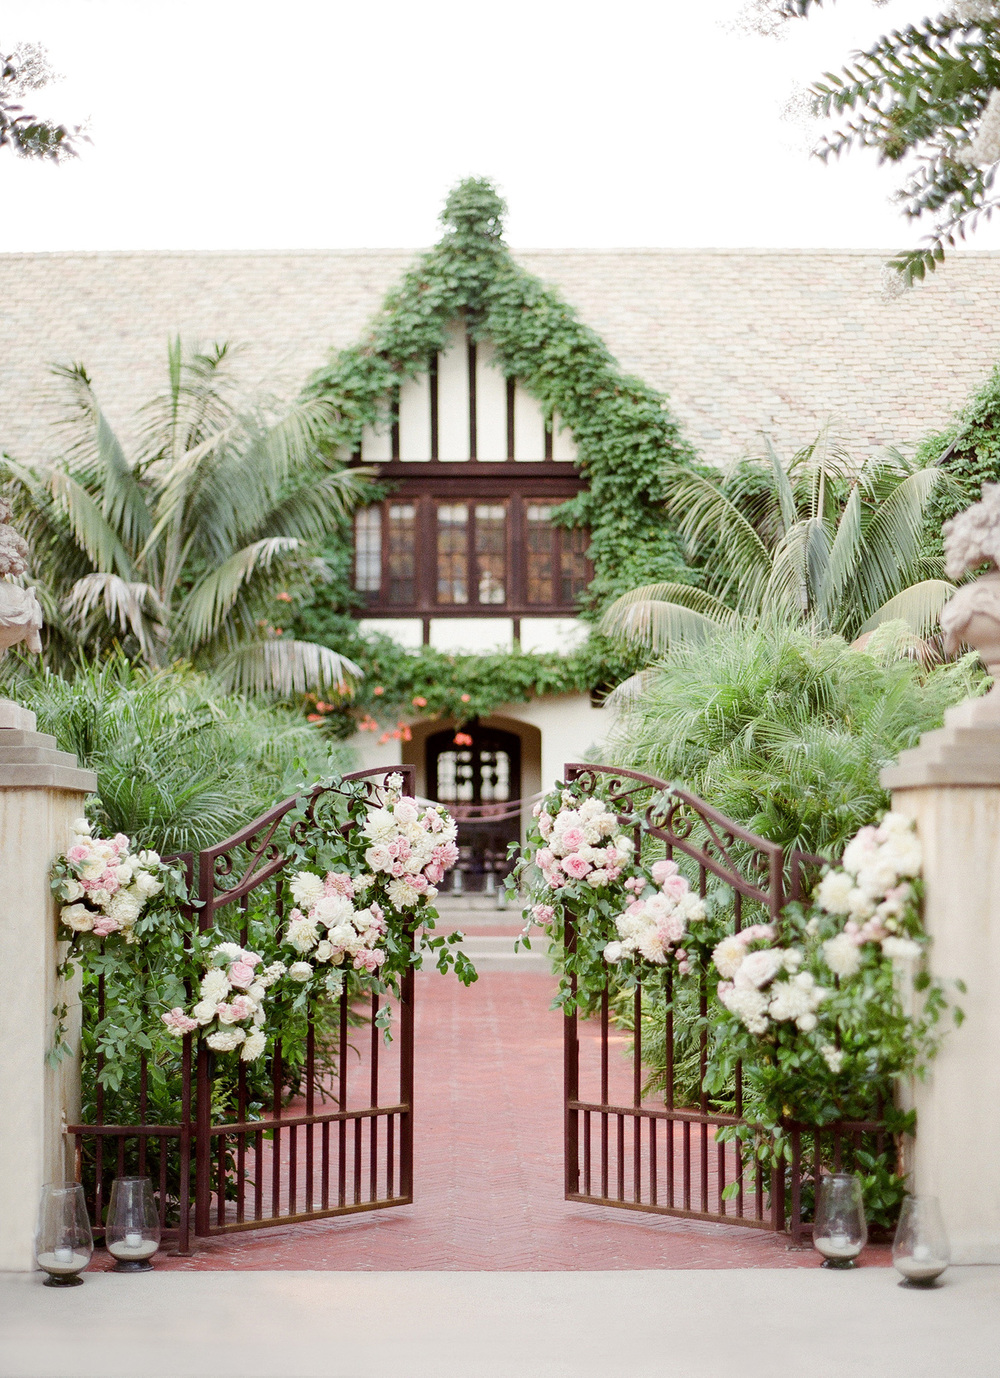 santabarbarawedding.com | Santa Barbara Wedding Style Blog | Private Estate Wedding Inspiration Photographed by Jose Villa | Merryl Brown Events | Hogue and Co